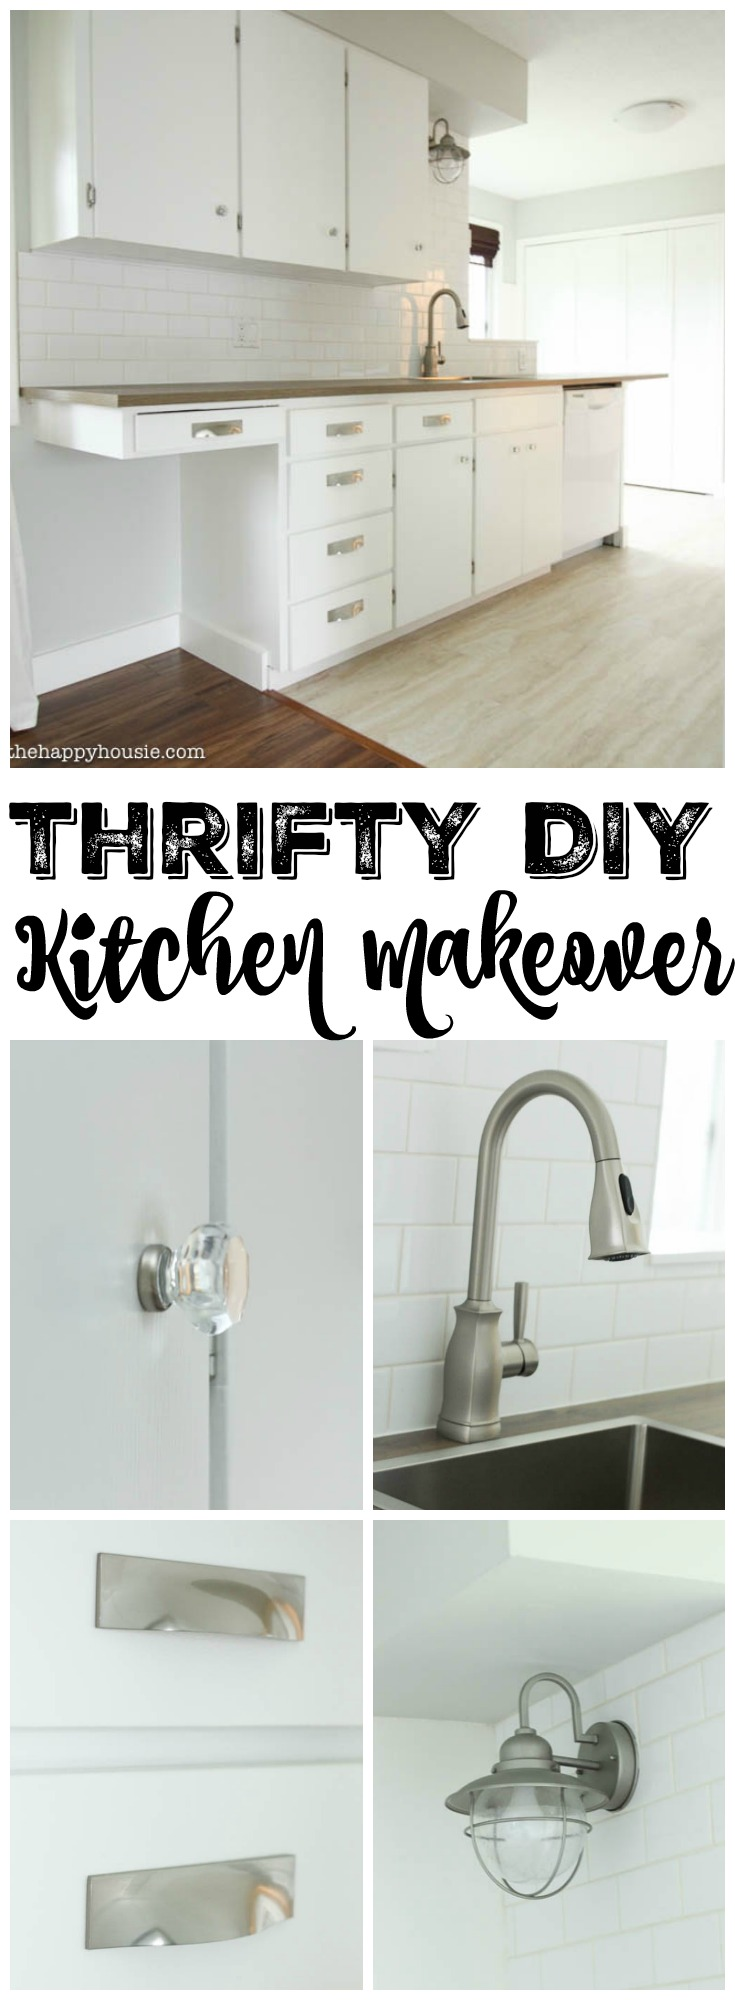 Supreme Home Depot Click Laminate Tile At Happyhousie Benjamin Moore Simply D Lawless Hardware Ikea Counter Moen Faucet Diy Kitchen Makeover houzz-03 D Lawless Hardware